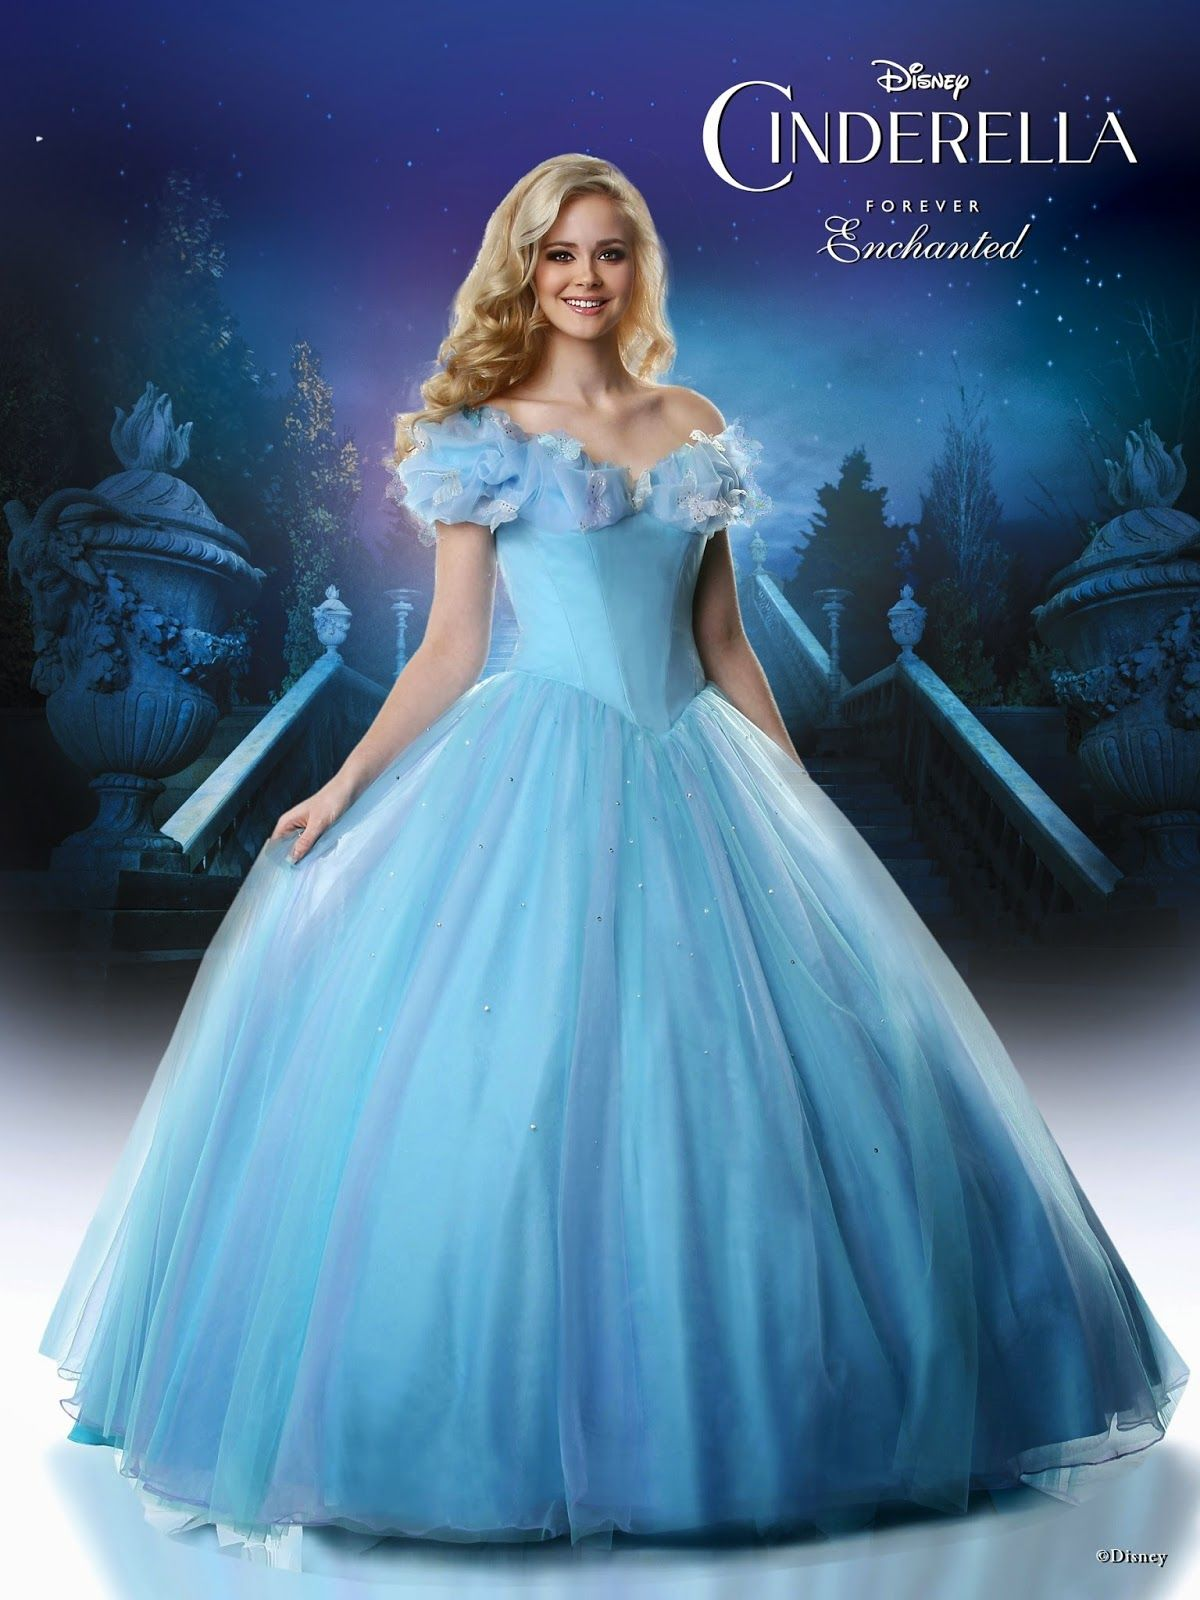 Announcing the Disney Forever Enchanted Keepsake Gown Collection ...